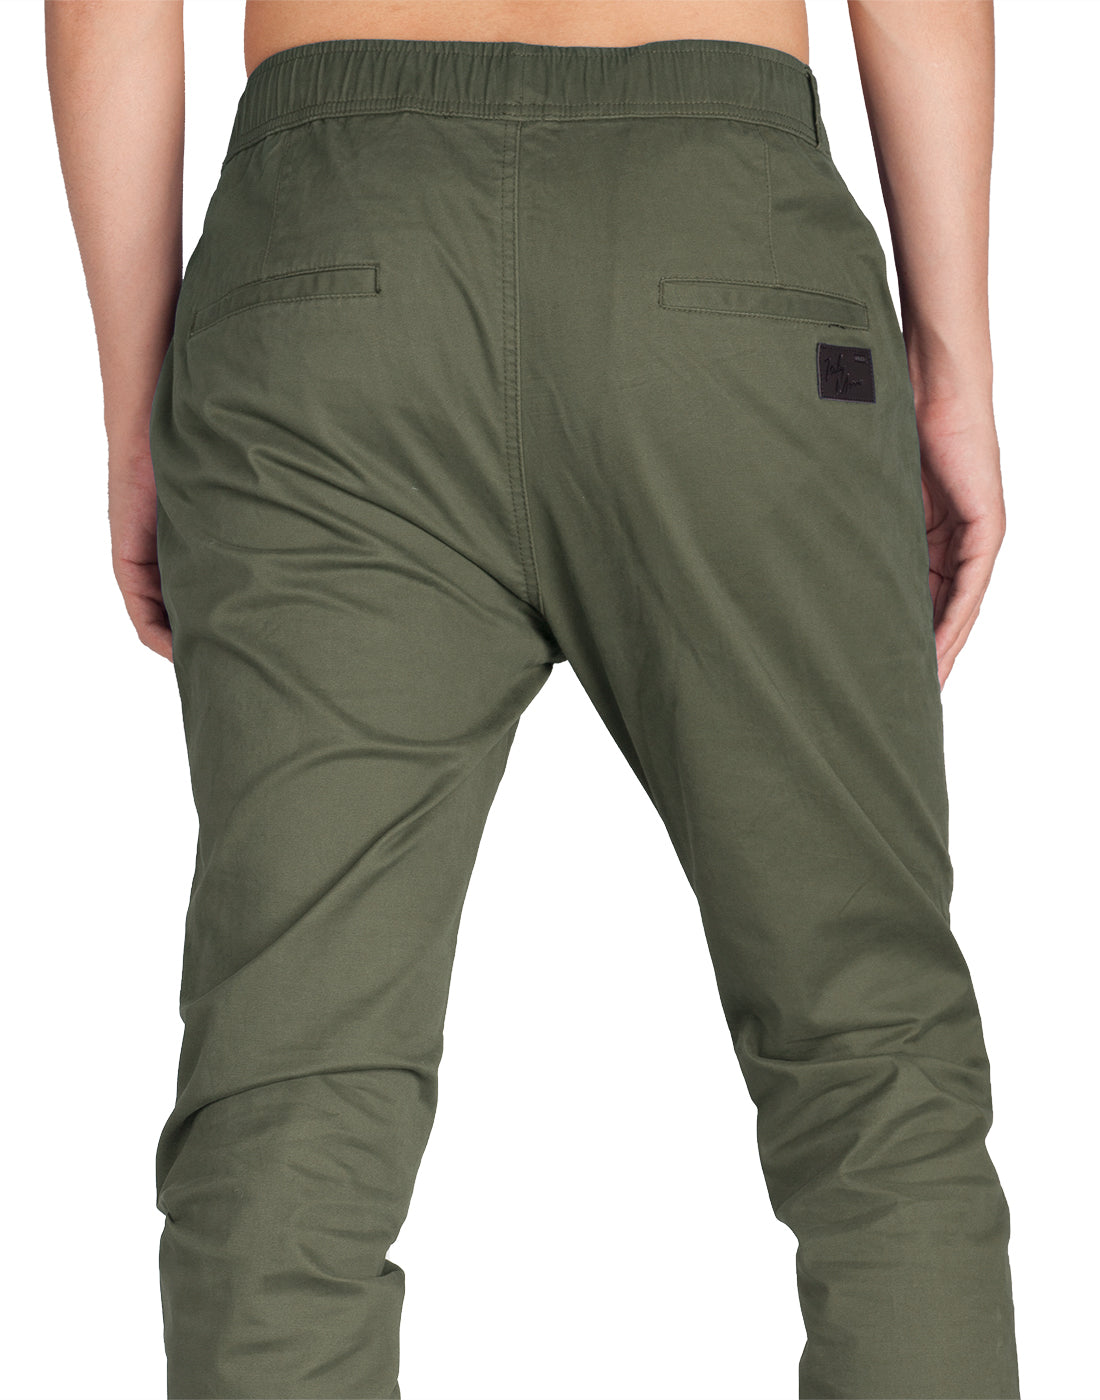 Man Biker Jogger Pants Army Green - italymorn